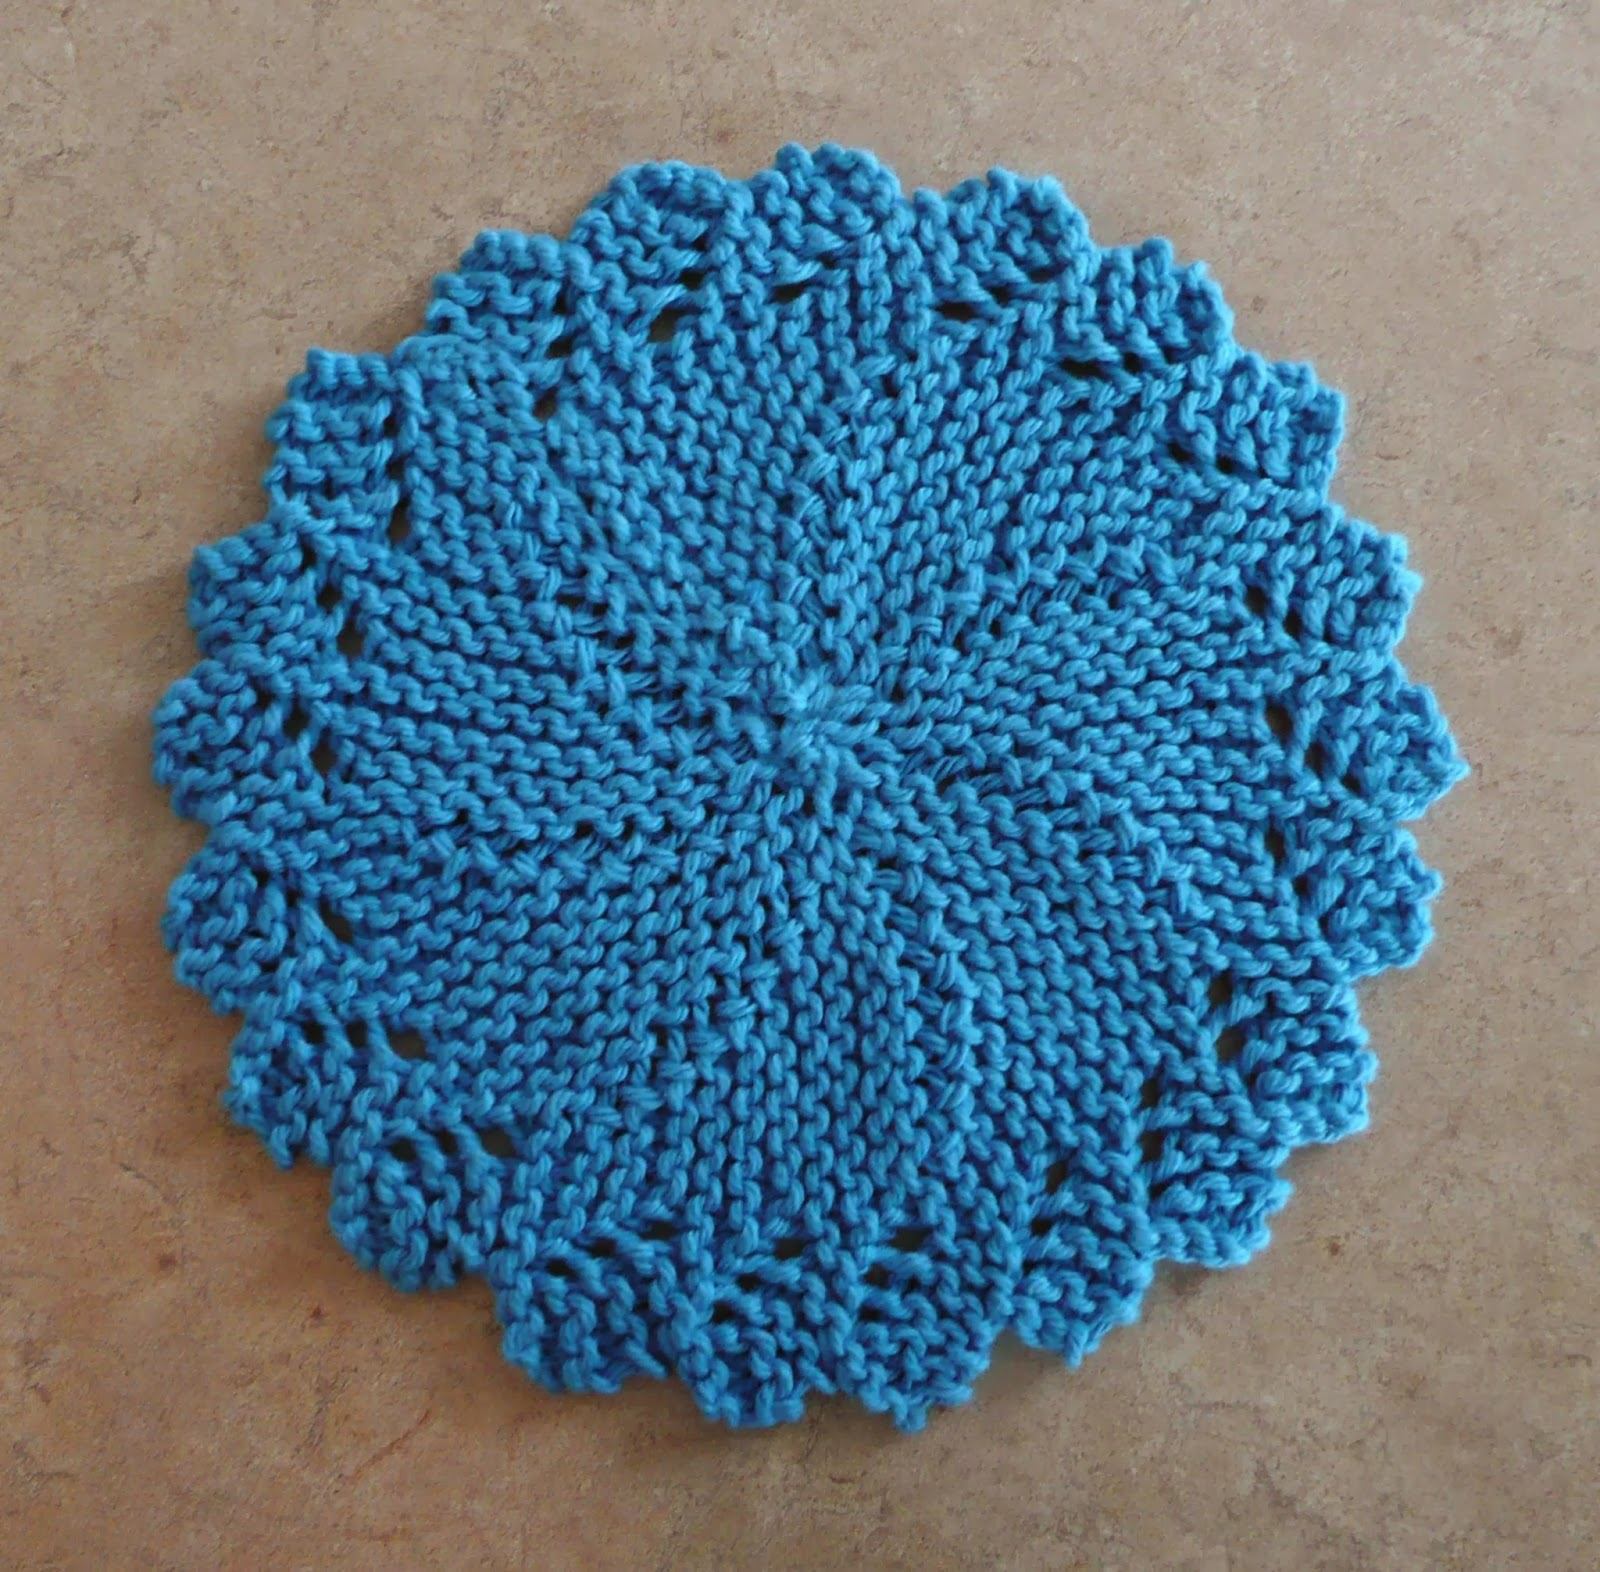 Perfect One-Ounce Dishcloth - FREE Patterns: FREE PATTERN #11 ...